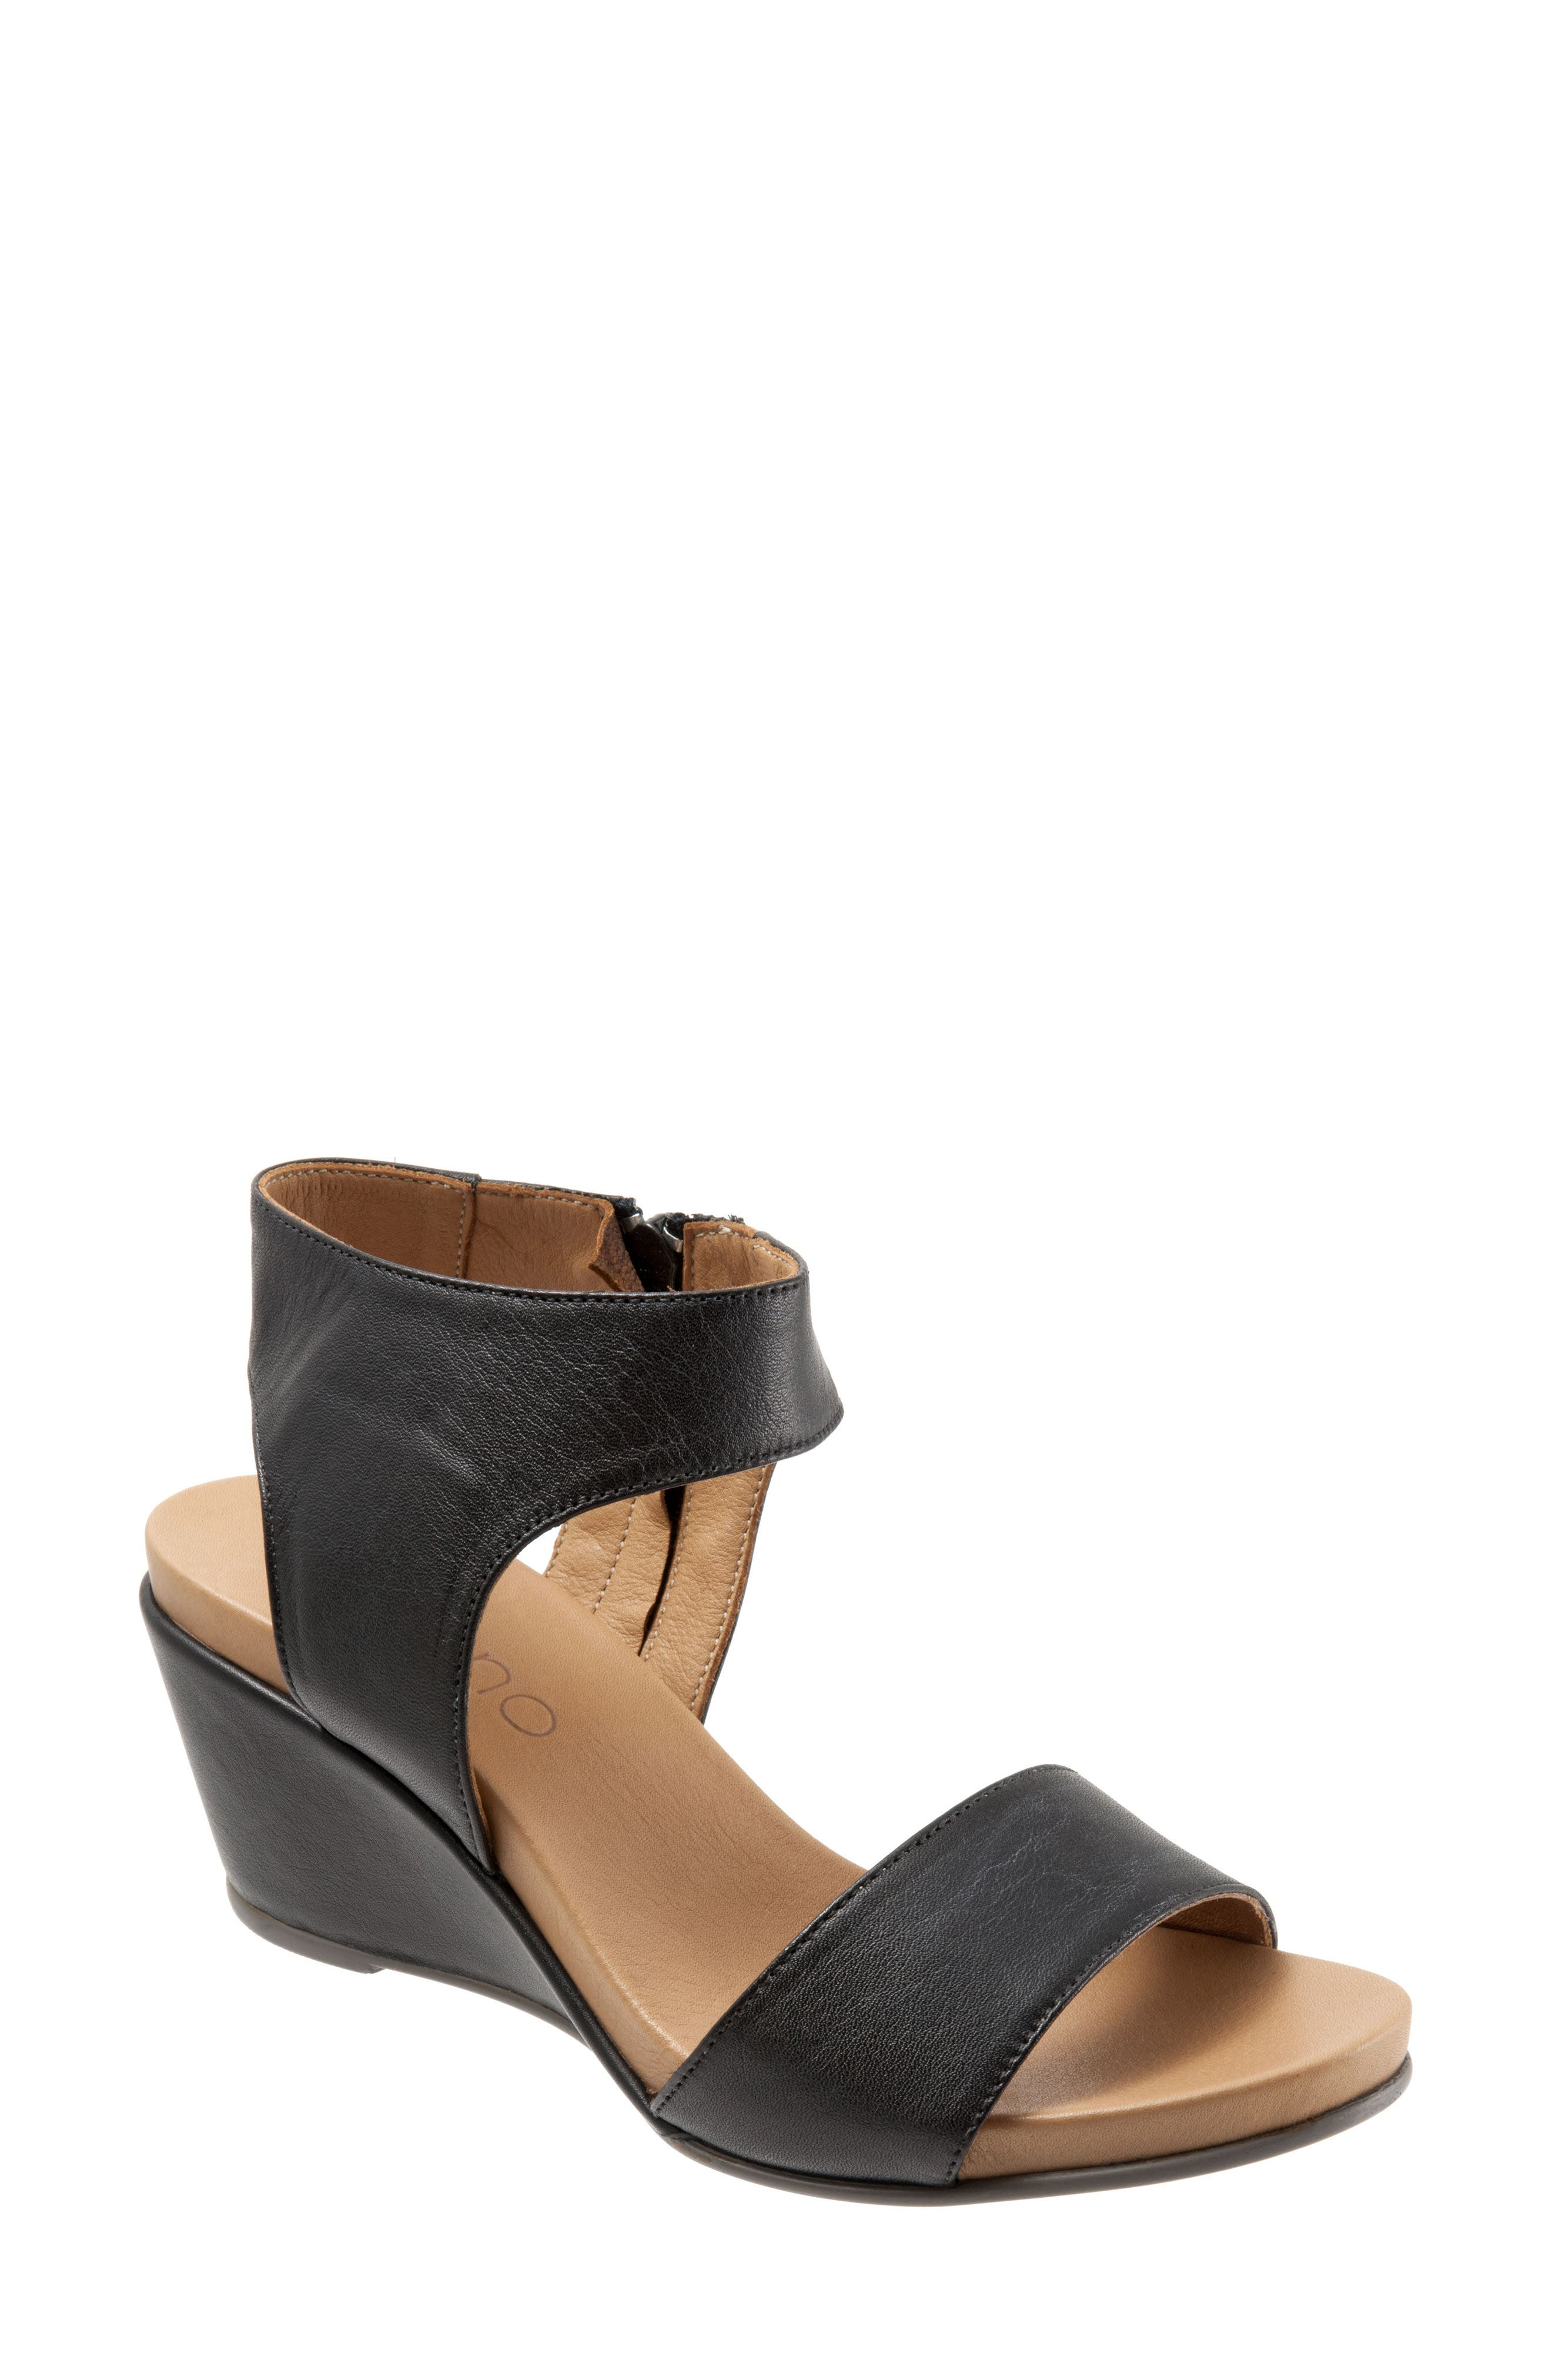 Ida Wedge Sandal,                         Main,                         color, Black Leather